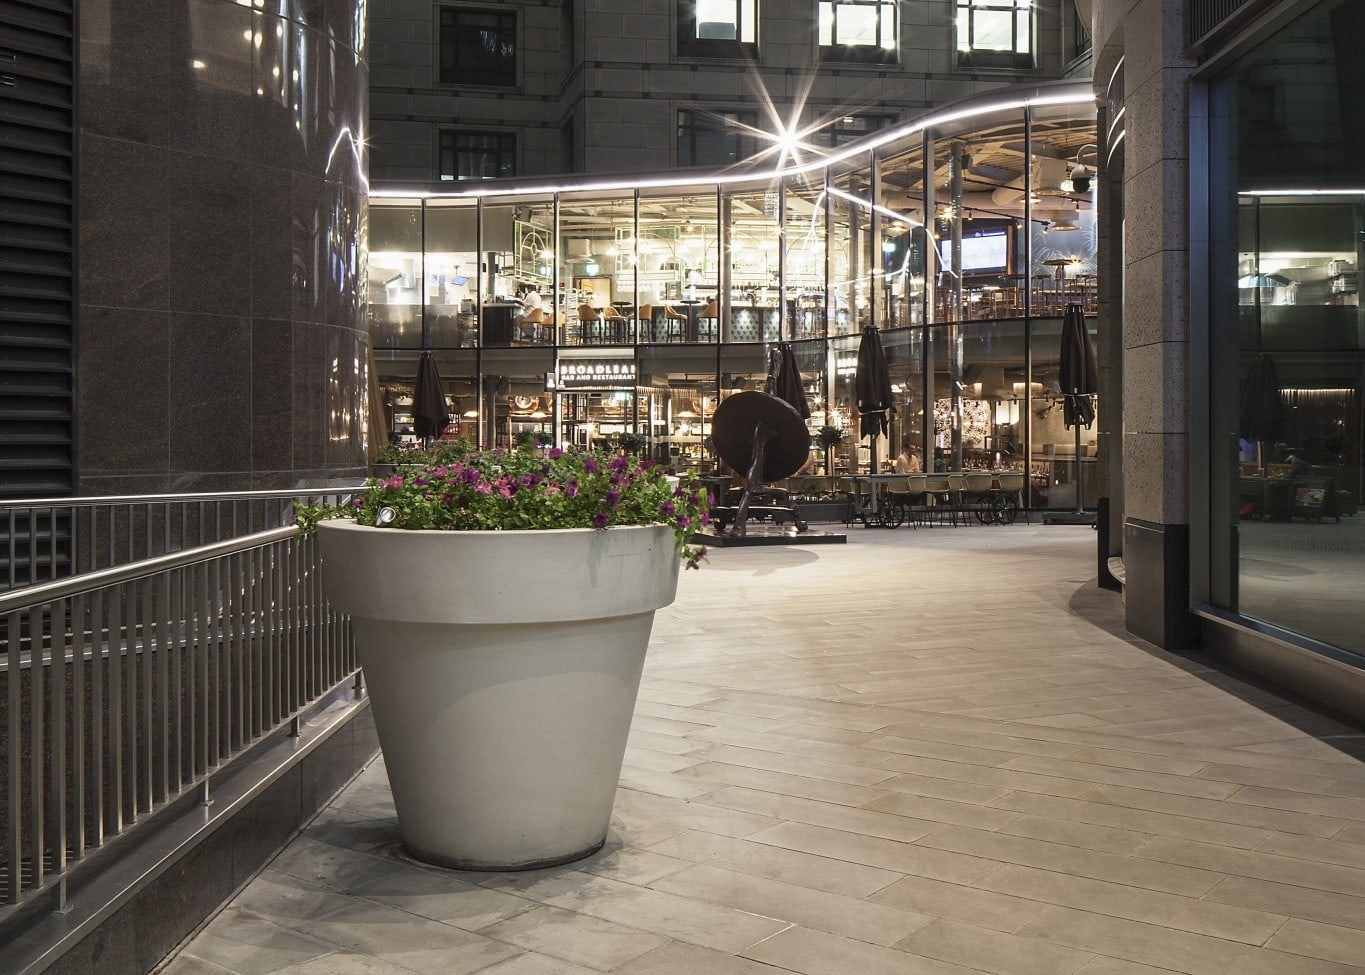 retail lighting design: outdoor shop and restaurants exterior